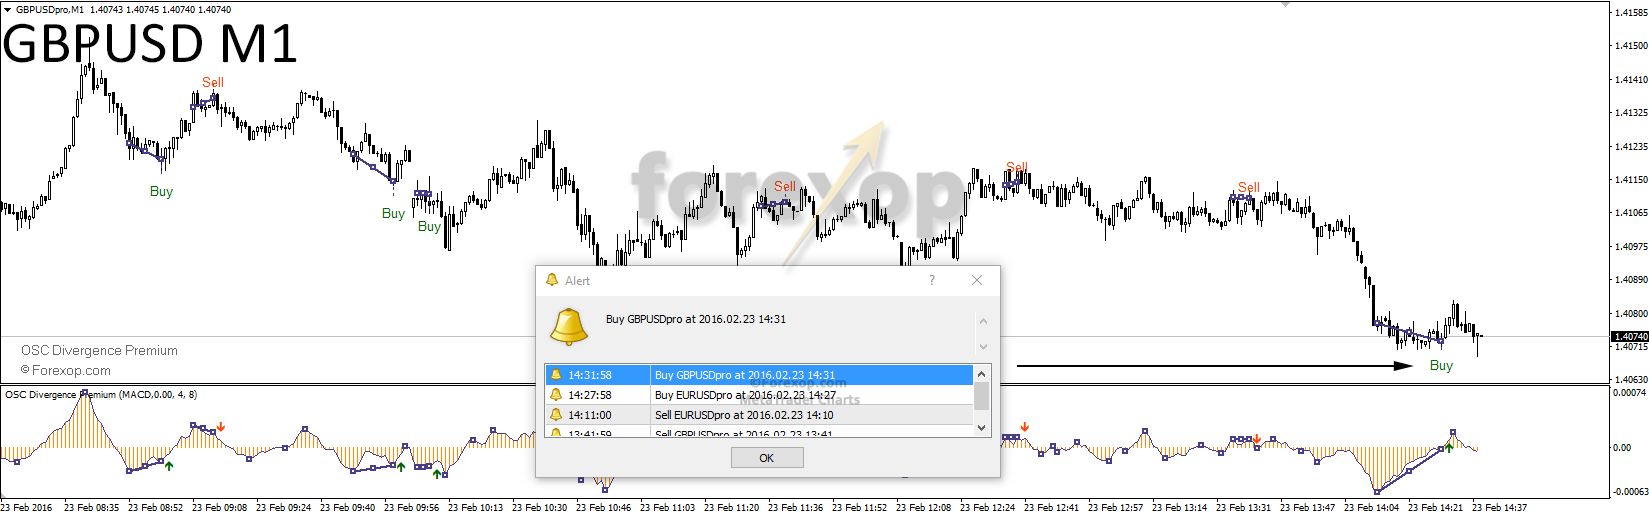 Figure 4: Trade signal with pop up alert box